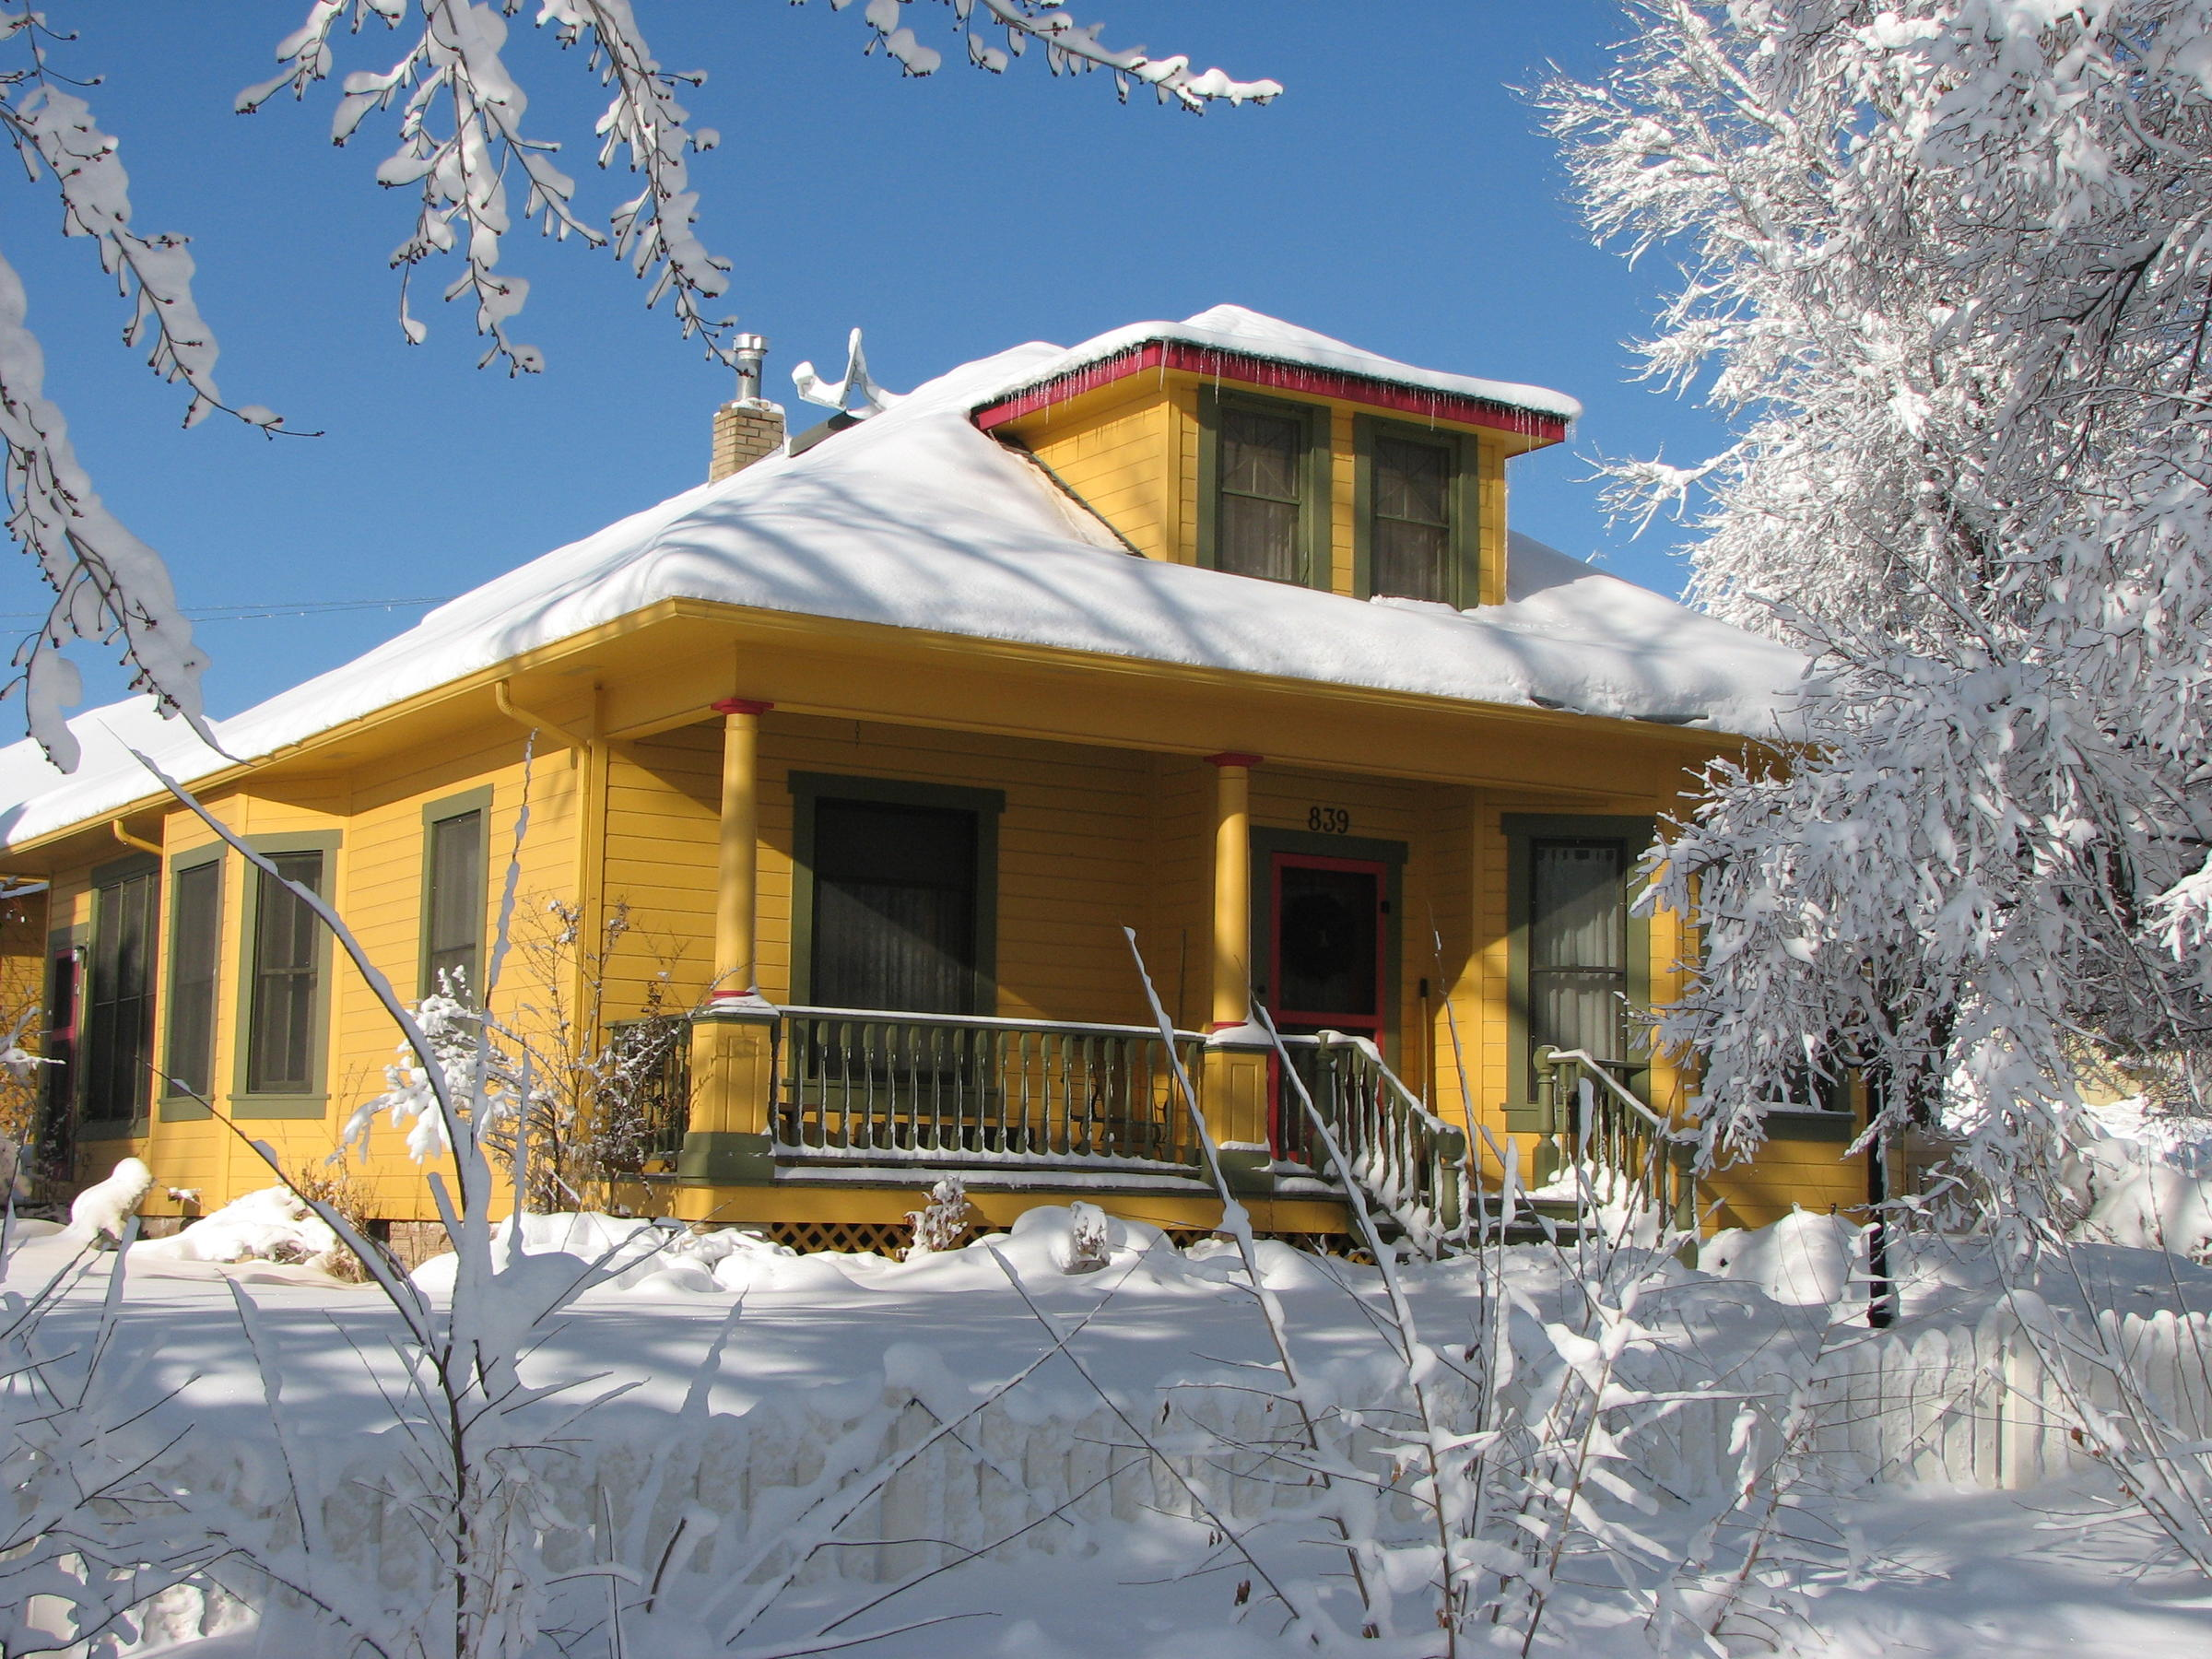 colorado housing market so skewed to sellers it s not even funny